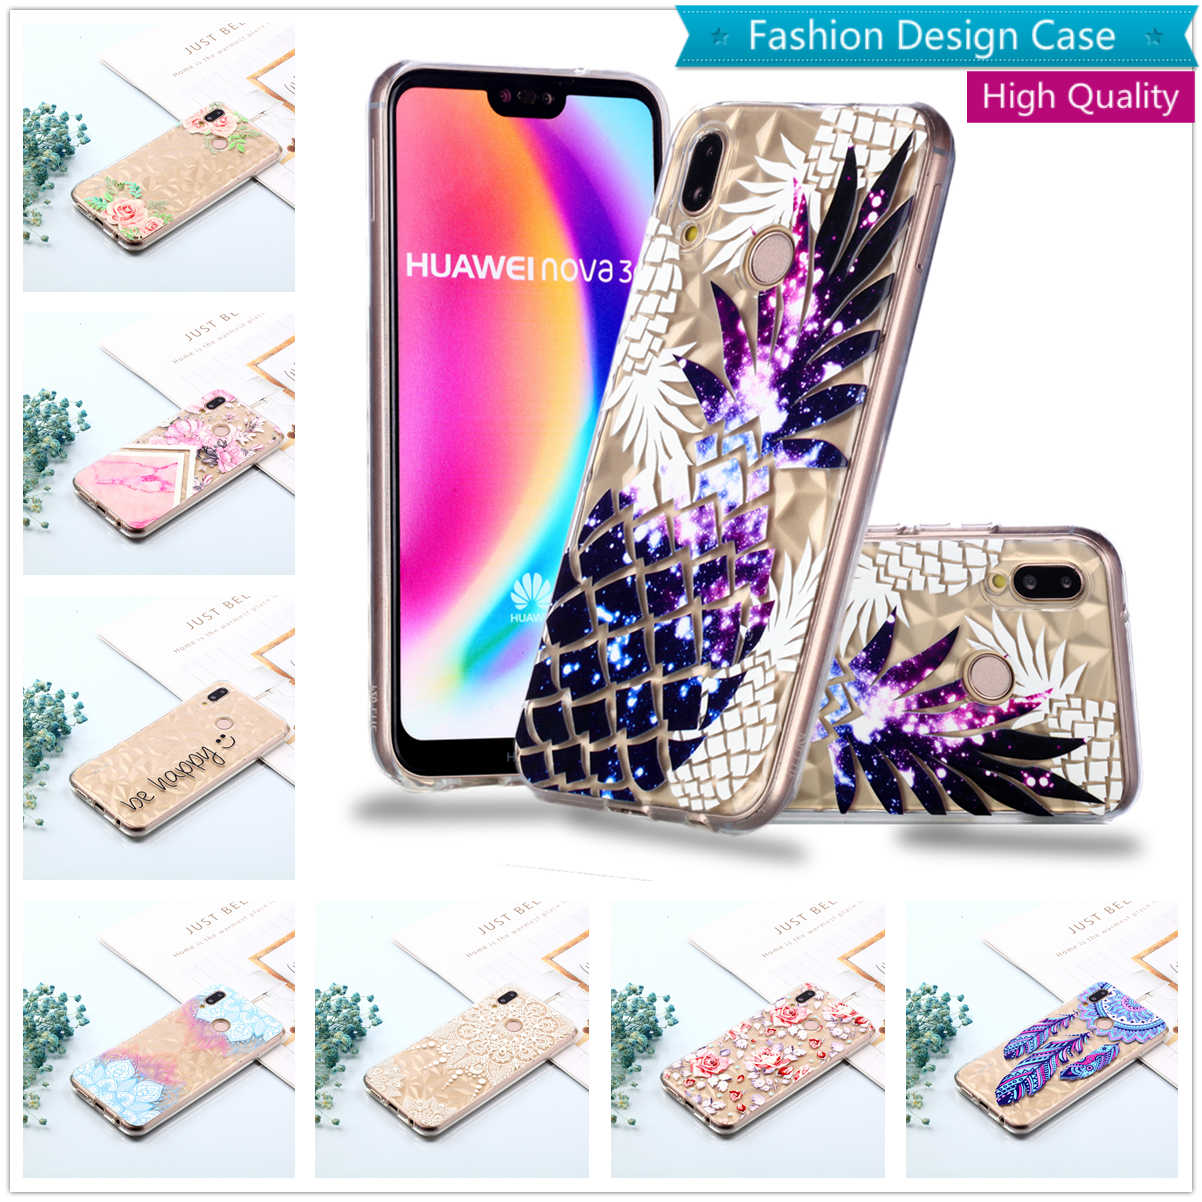 Caso for Huawei P20 Lite Capa Mate 20 Pro 10 TPU Soft Phone Case Transparent Coque Diamond Back Cover Huaewi Hawei Y9 Y6 Y5 2018